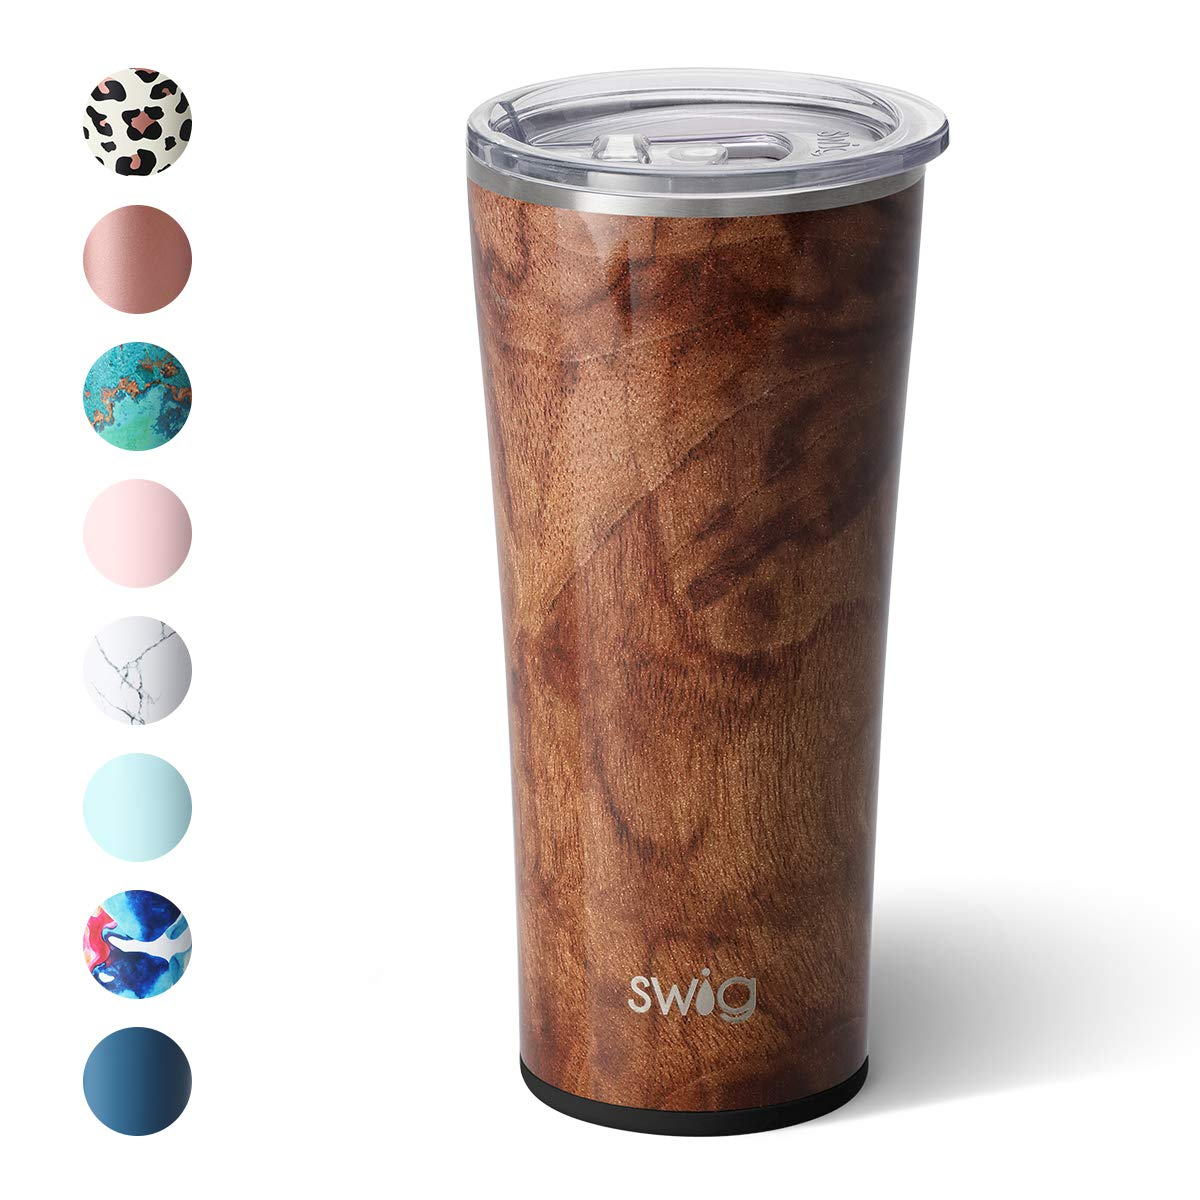 Swig Life 22oz Triple Insulated Stainless Steel Skinny Tumbler with Lid, Dishwasher Safe, Double Wall, and Vacuum Sealed Travel Coffee Tumbler in our Black Walnut Pattern (Multiple Patterns Available)